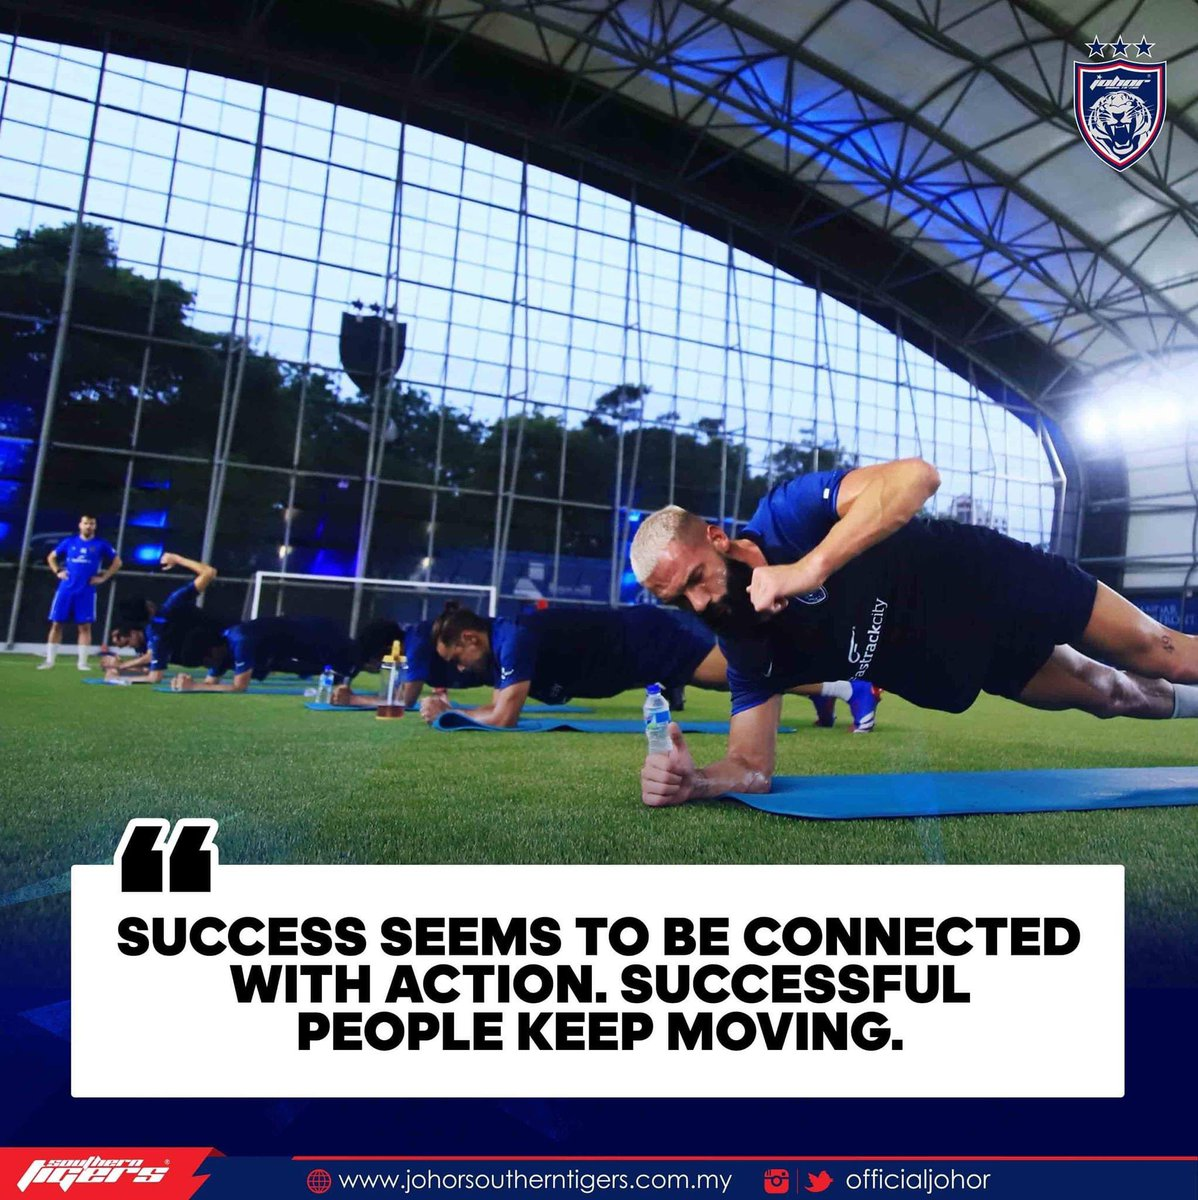 Success seems to be connected with action. Successful people keep moving.  Hidup Johor Demi Johor #HarimauSelatan #SouthernTigers #PermataSelatan #JewelOfTheSouth #JDTuntukSemua #JDTforAllpic.twitter.com/nd7Fc6DBOm